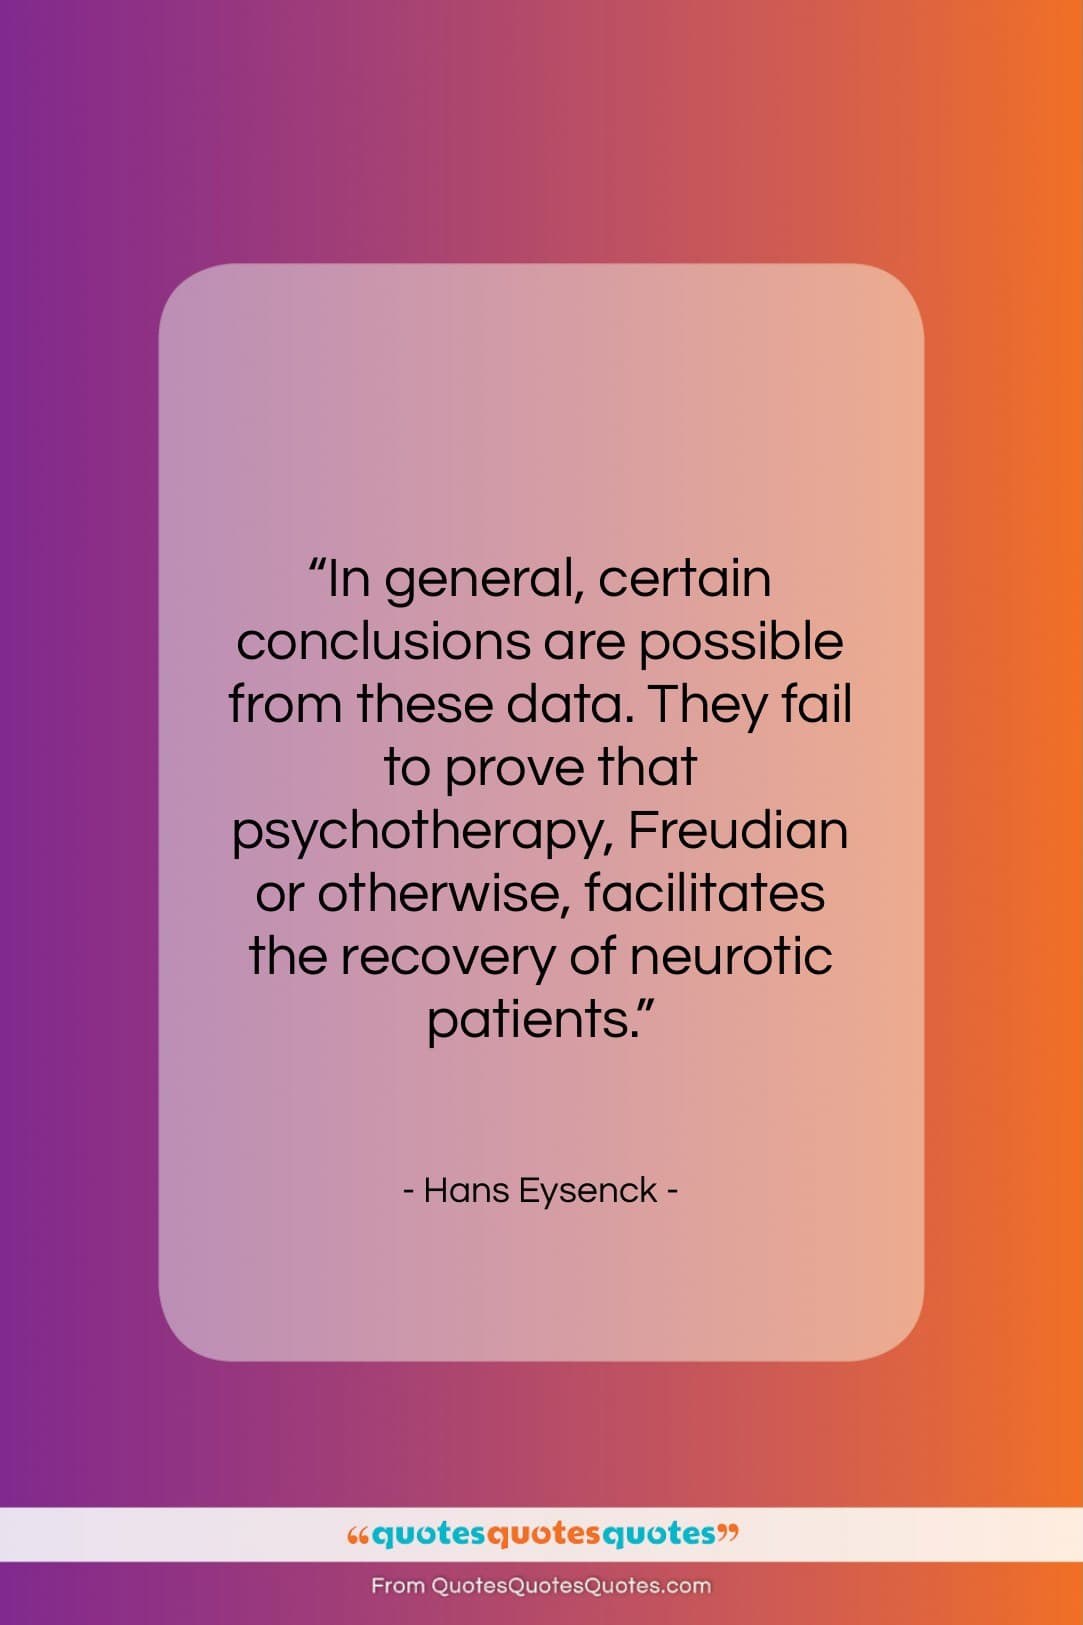 """Hans Eysenck quote: """"In general, certain conclusions are possible from…""""- at QuotesQuotesQuotes.com"""